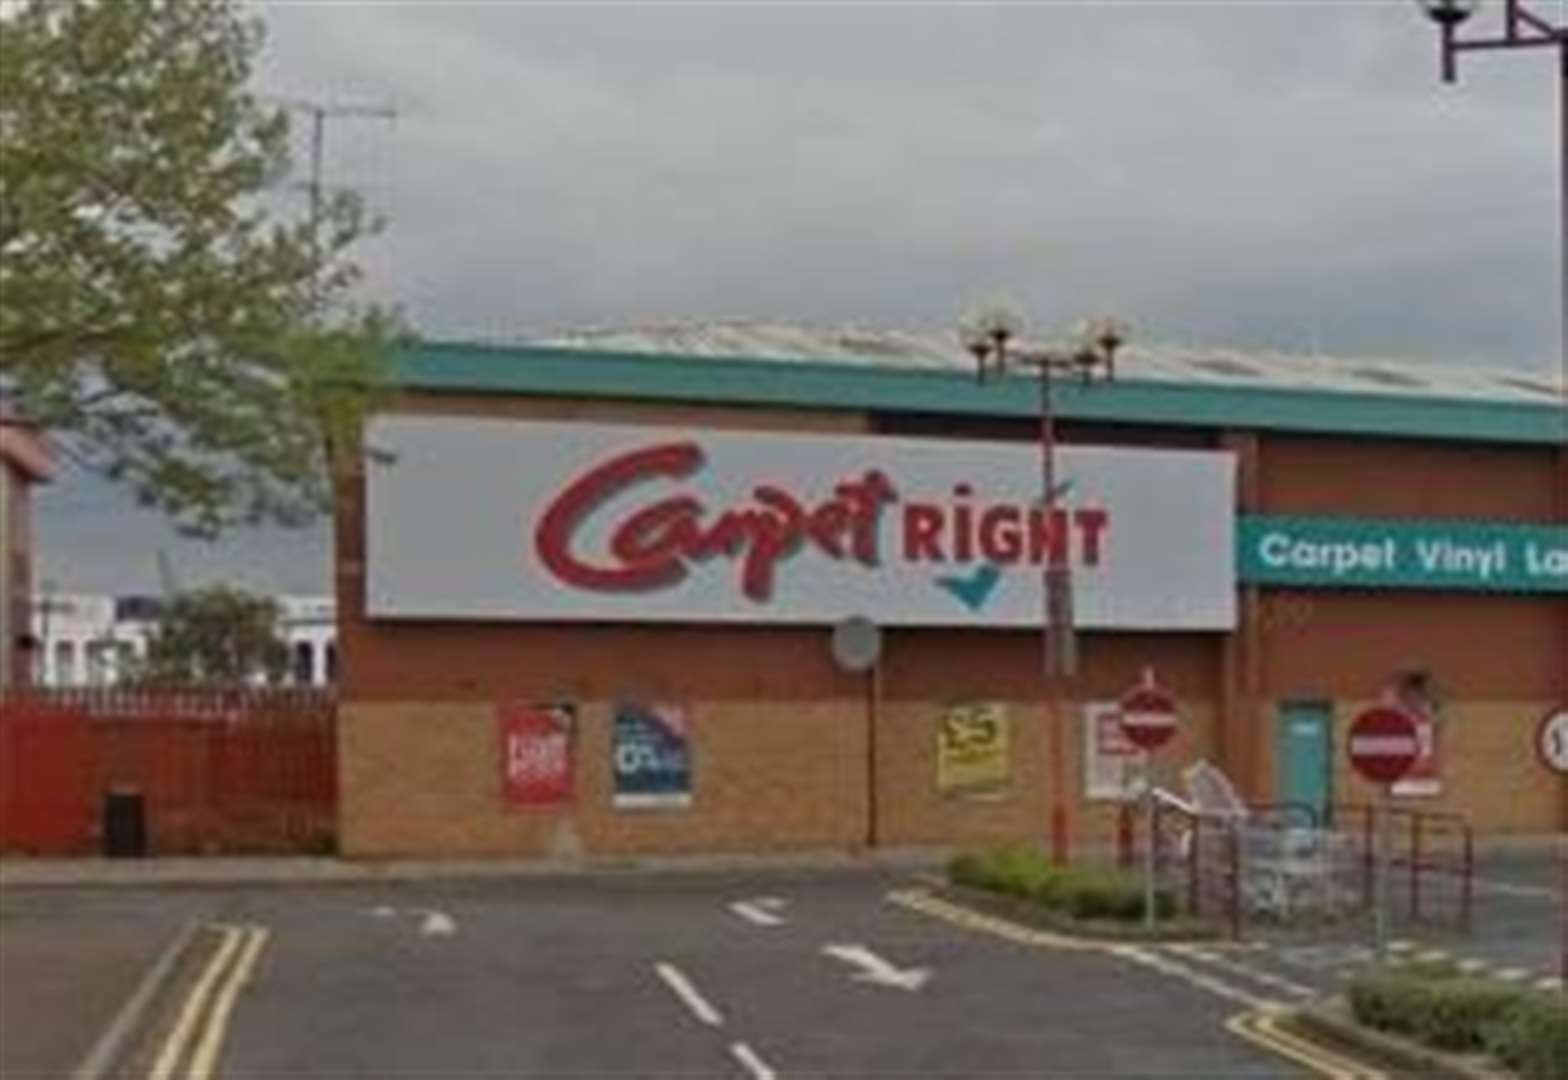 Carpetright to slash jobs and close stores